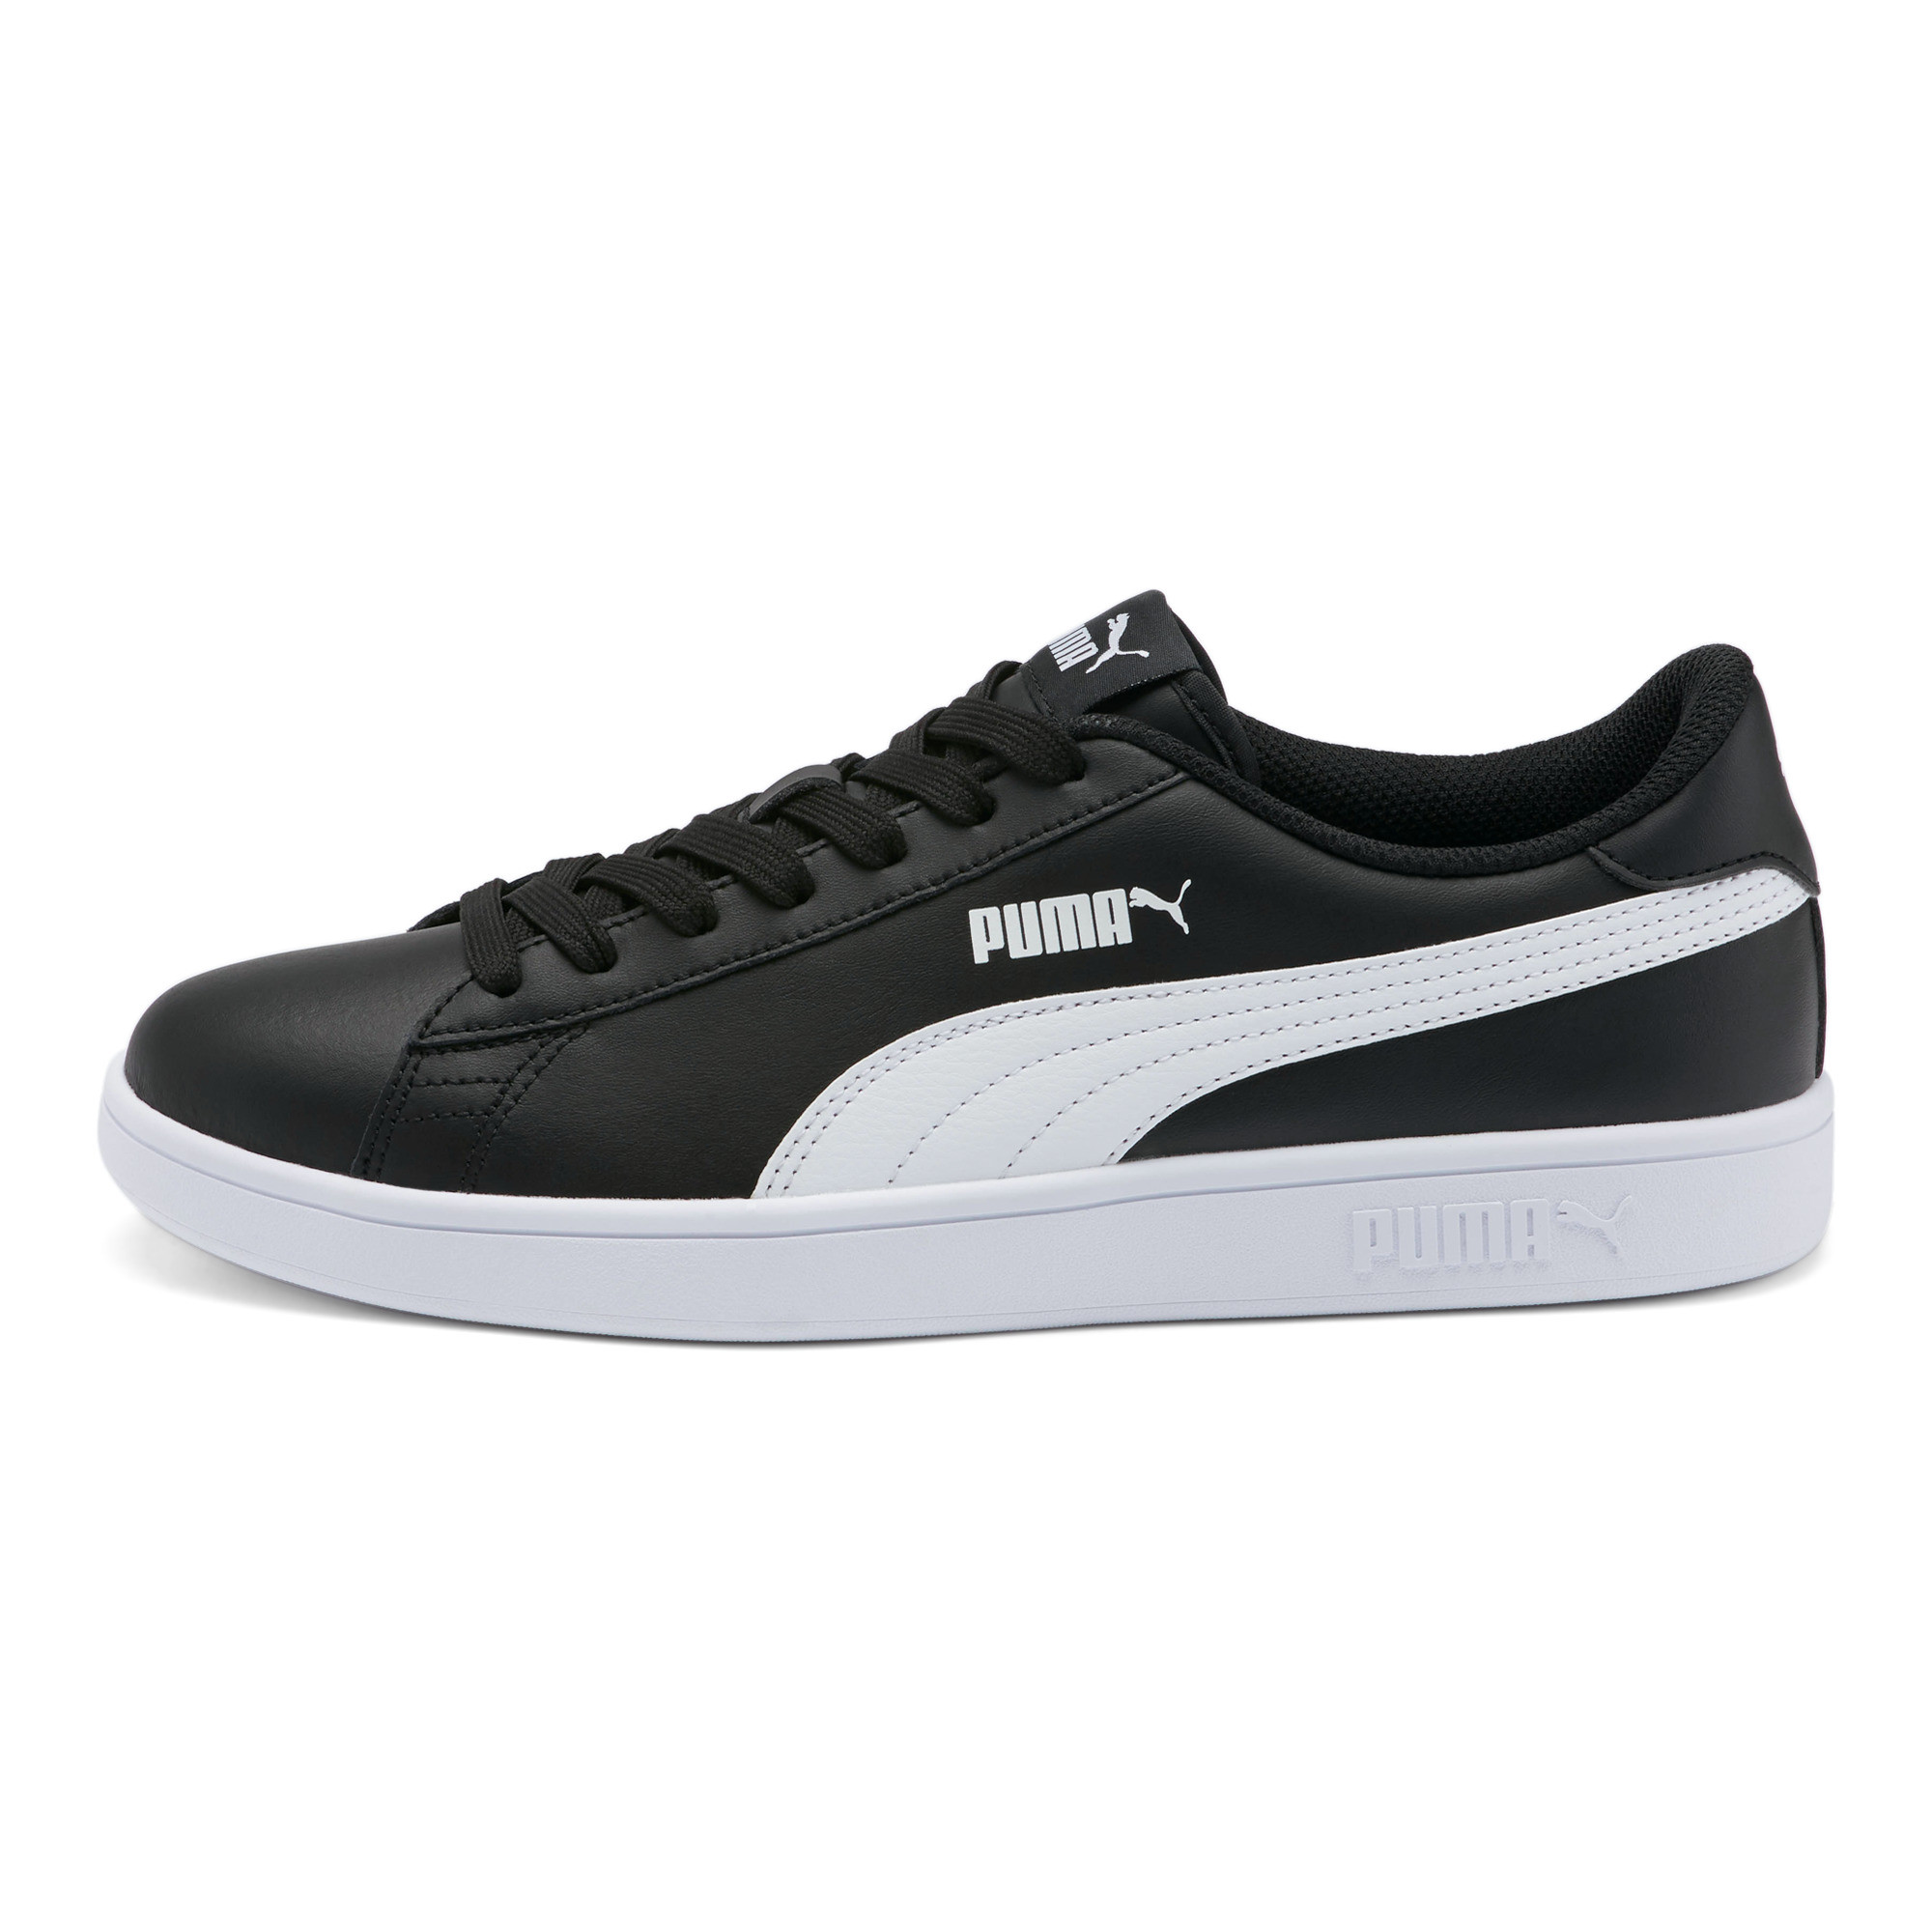 PUMA-PUMA-Smash-v2-Men-039-s-Sneakers-Men-Shoe-Basics miniatura 10